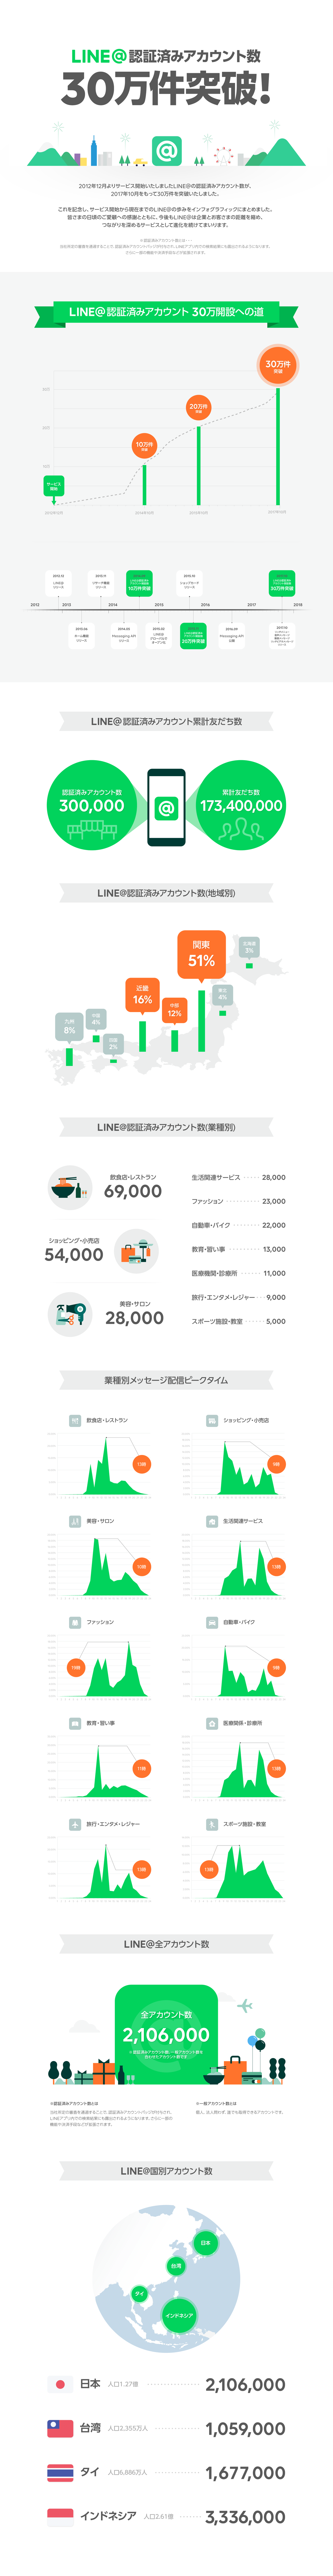 /stf/linecorp/ja/pr/1024_LINE@_infographic.png